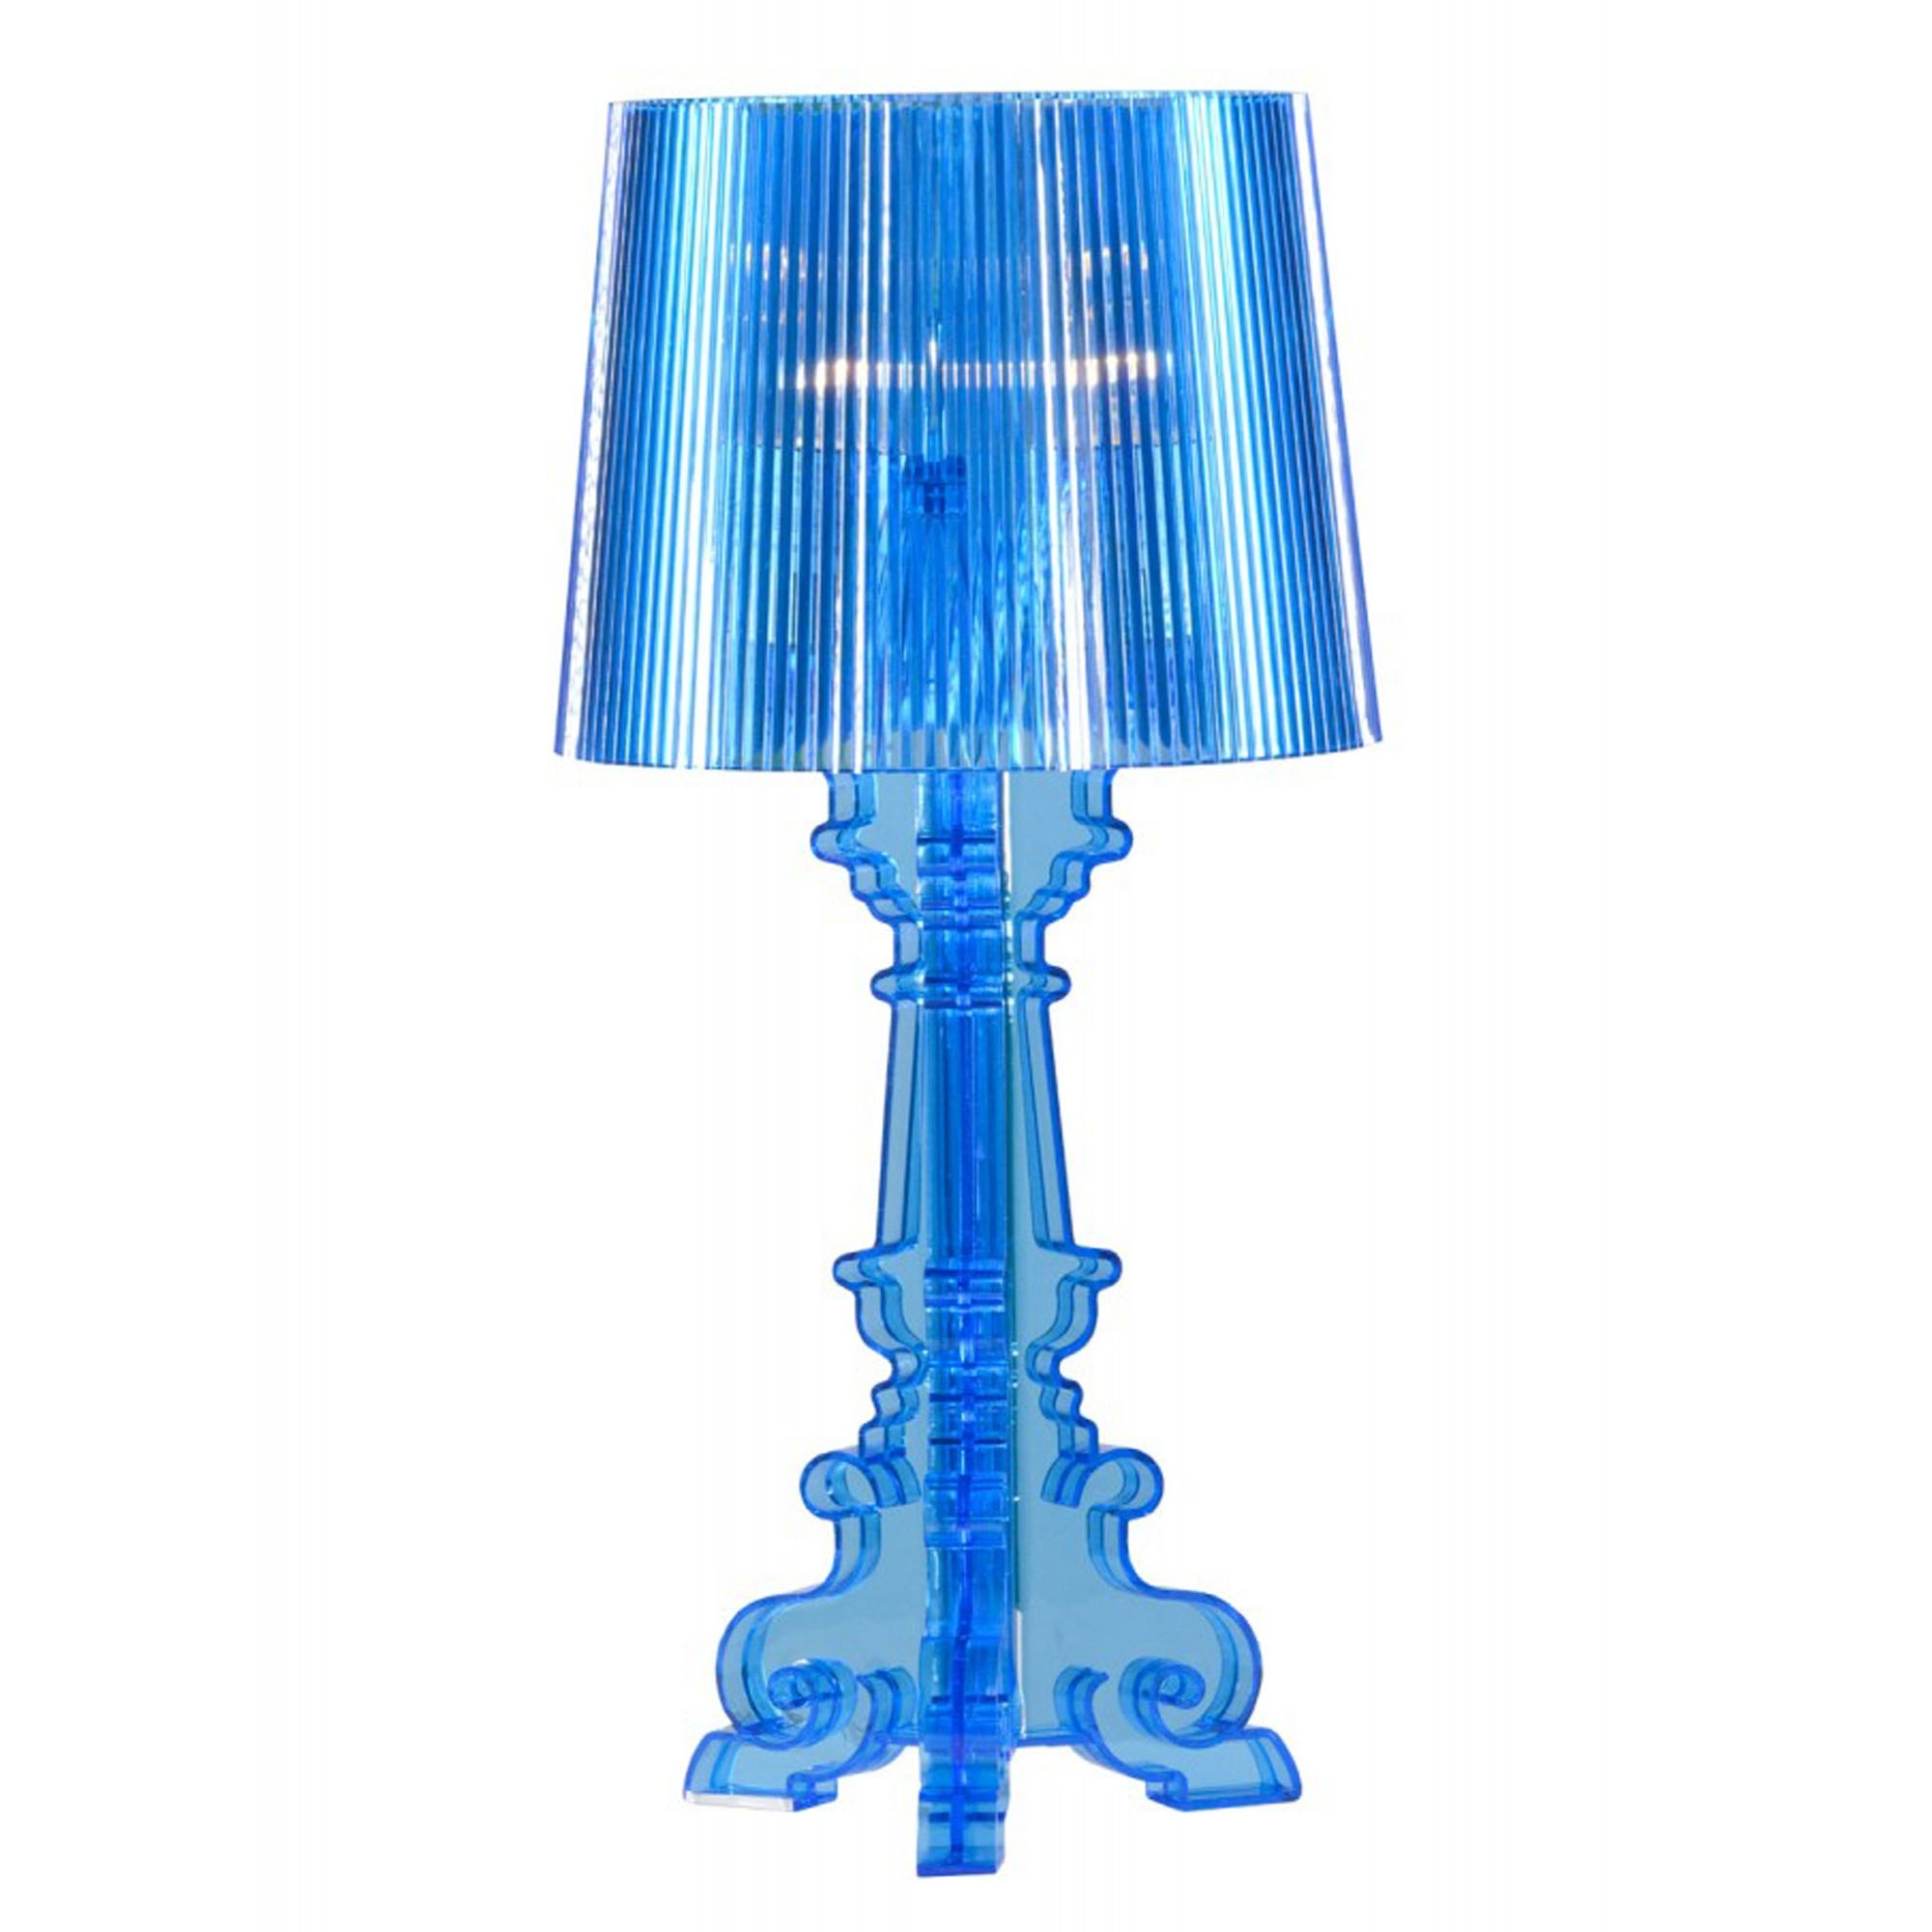 Blue Acrylic Modern Table Lamp Table Lamps